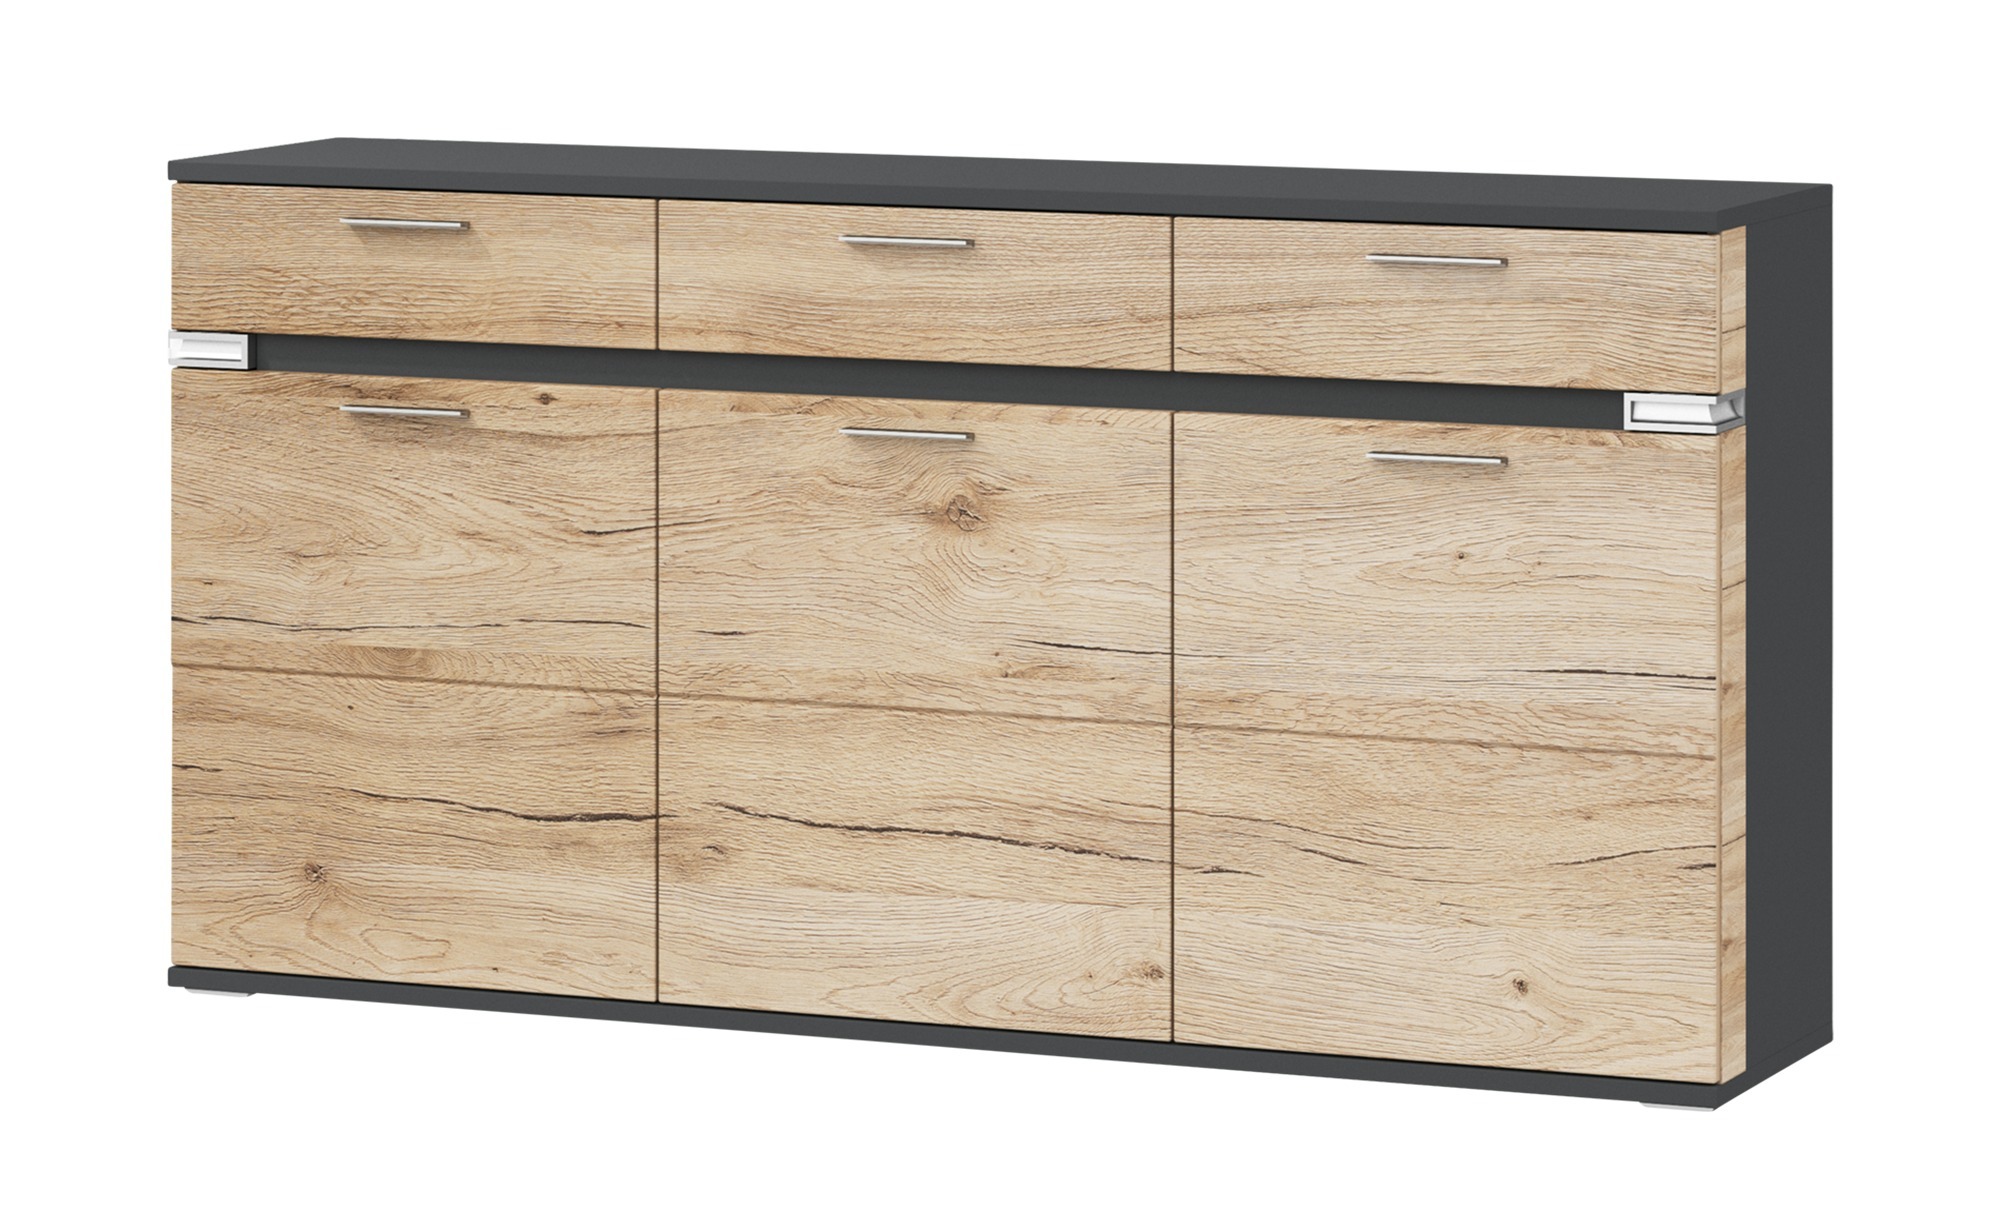 uno sideboard katt breite 180 cm h he 93 cm online kaufen bei woonio. Black Bedroom Furniture Sets. Home Design Ideas